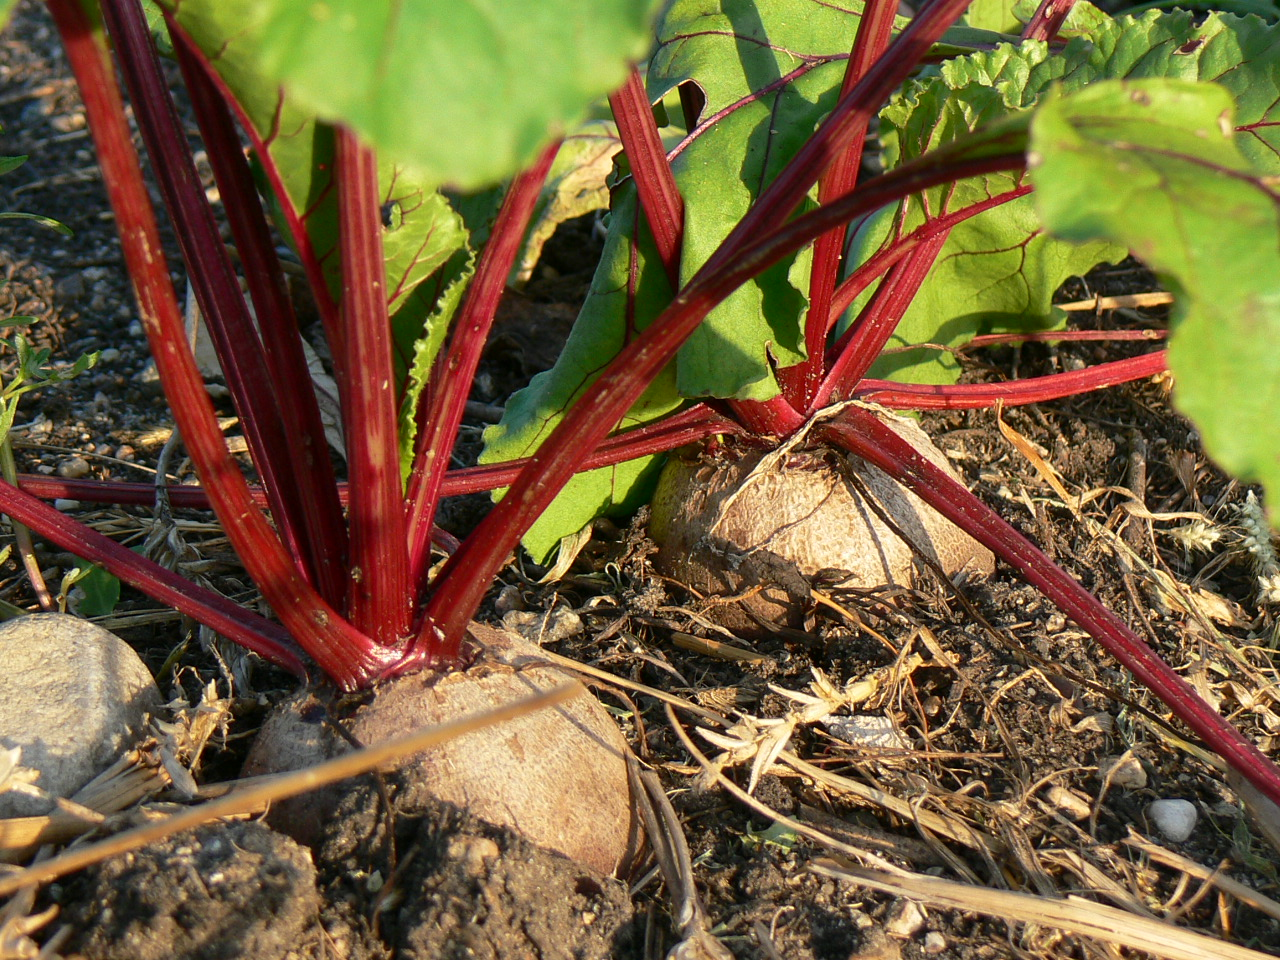 Sweet Red Beets (Beta vulgaris)